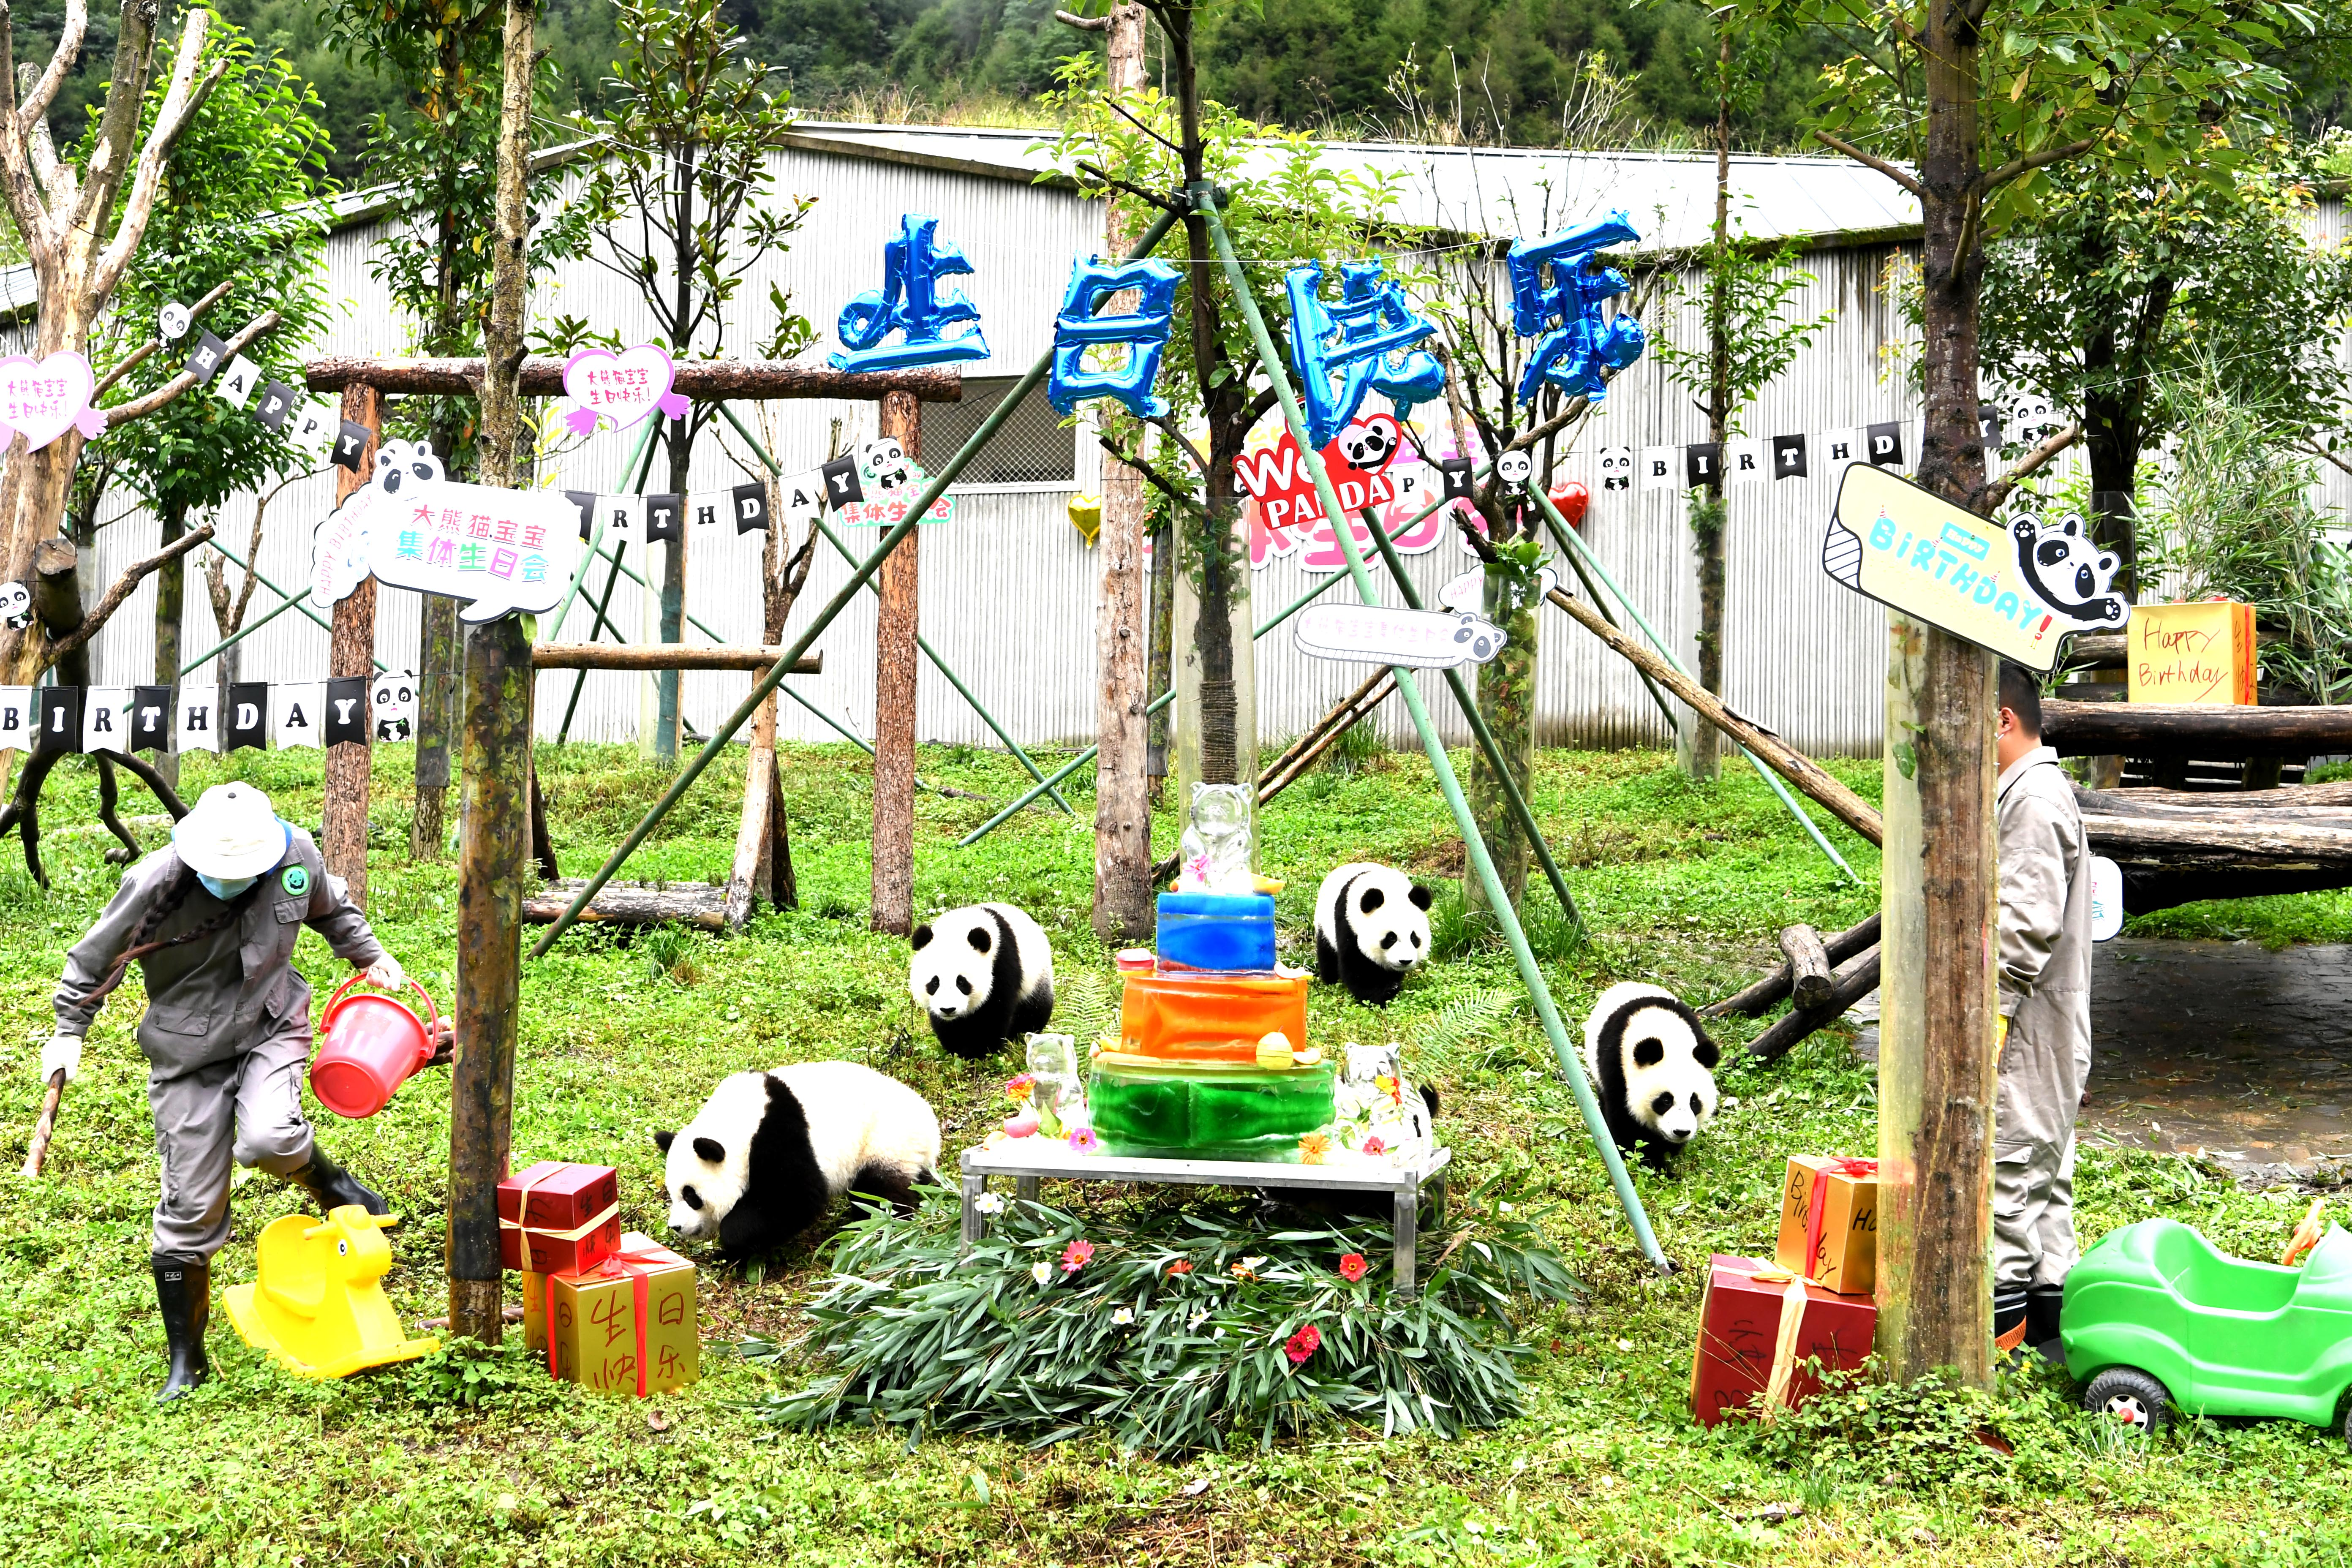 The panda babies are celebrating their birthday at the kindergarten in Wolong,Sichuan,China on 15th September, 2020